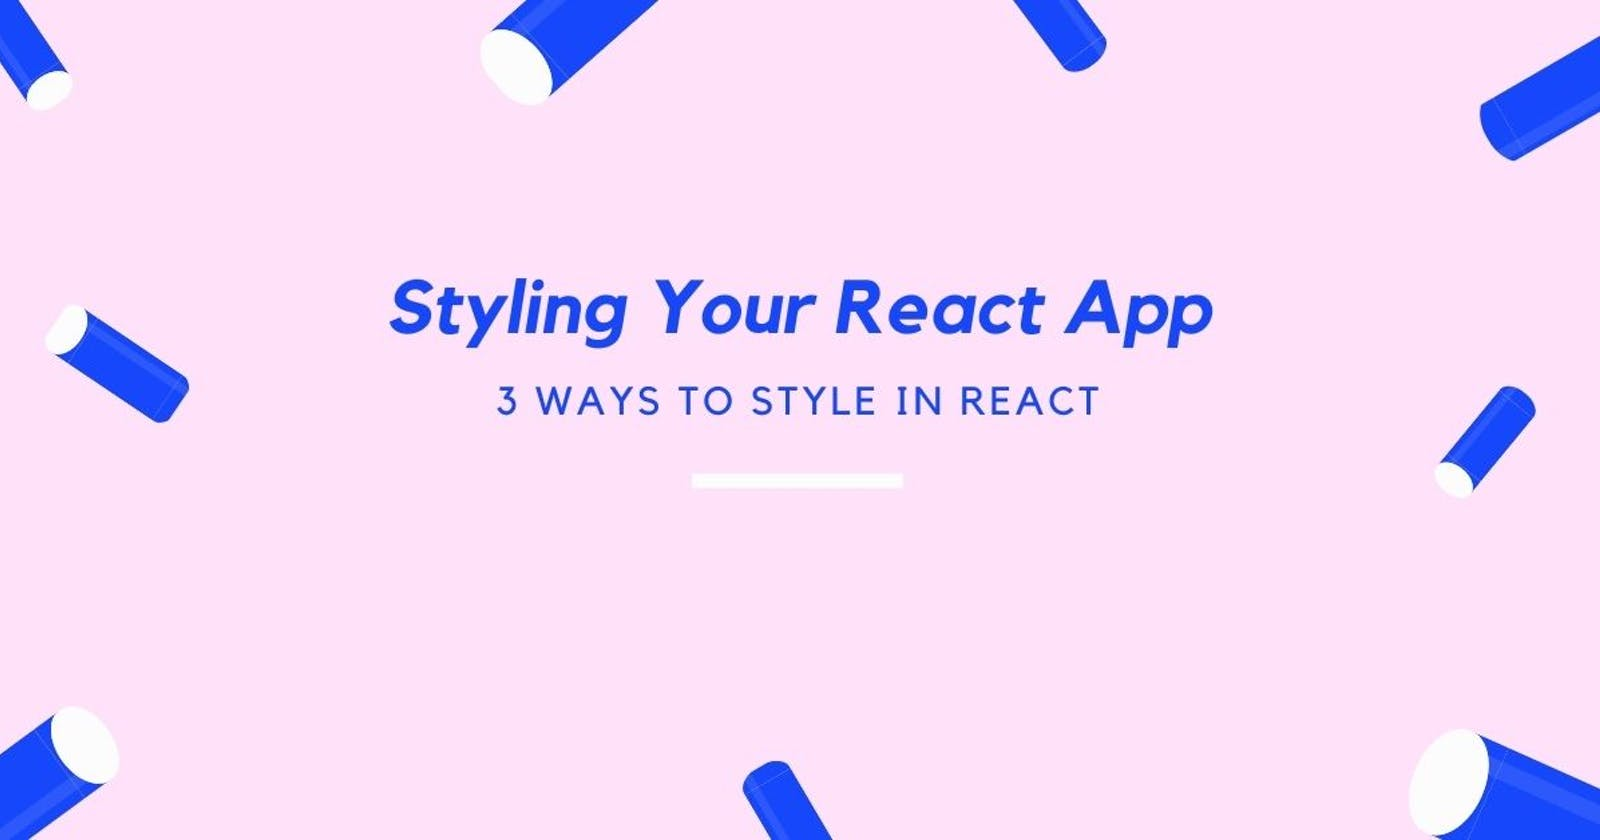 3 Ways to style in react.